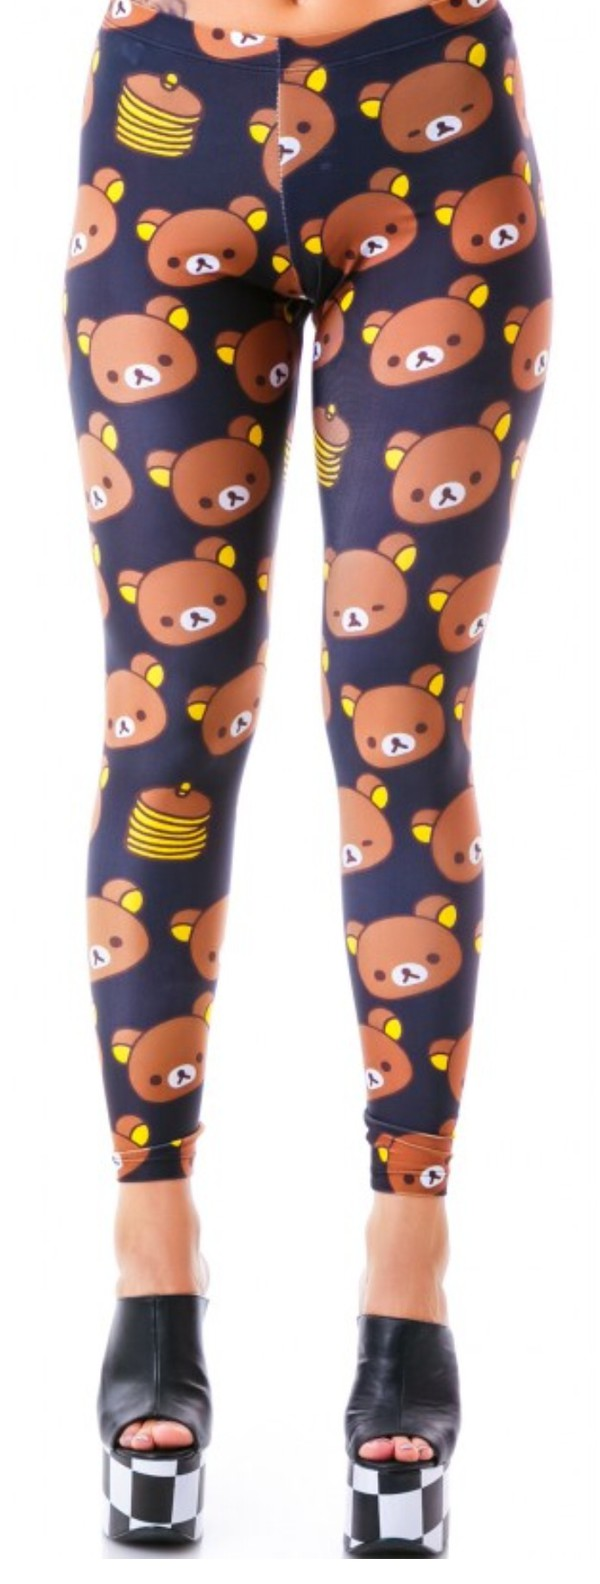 leggings kawaii Pankakes printed leggings bear